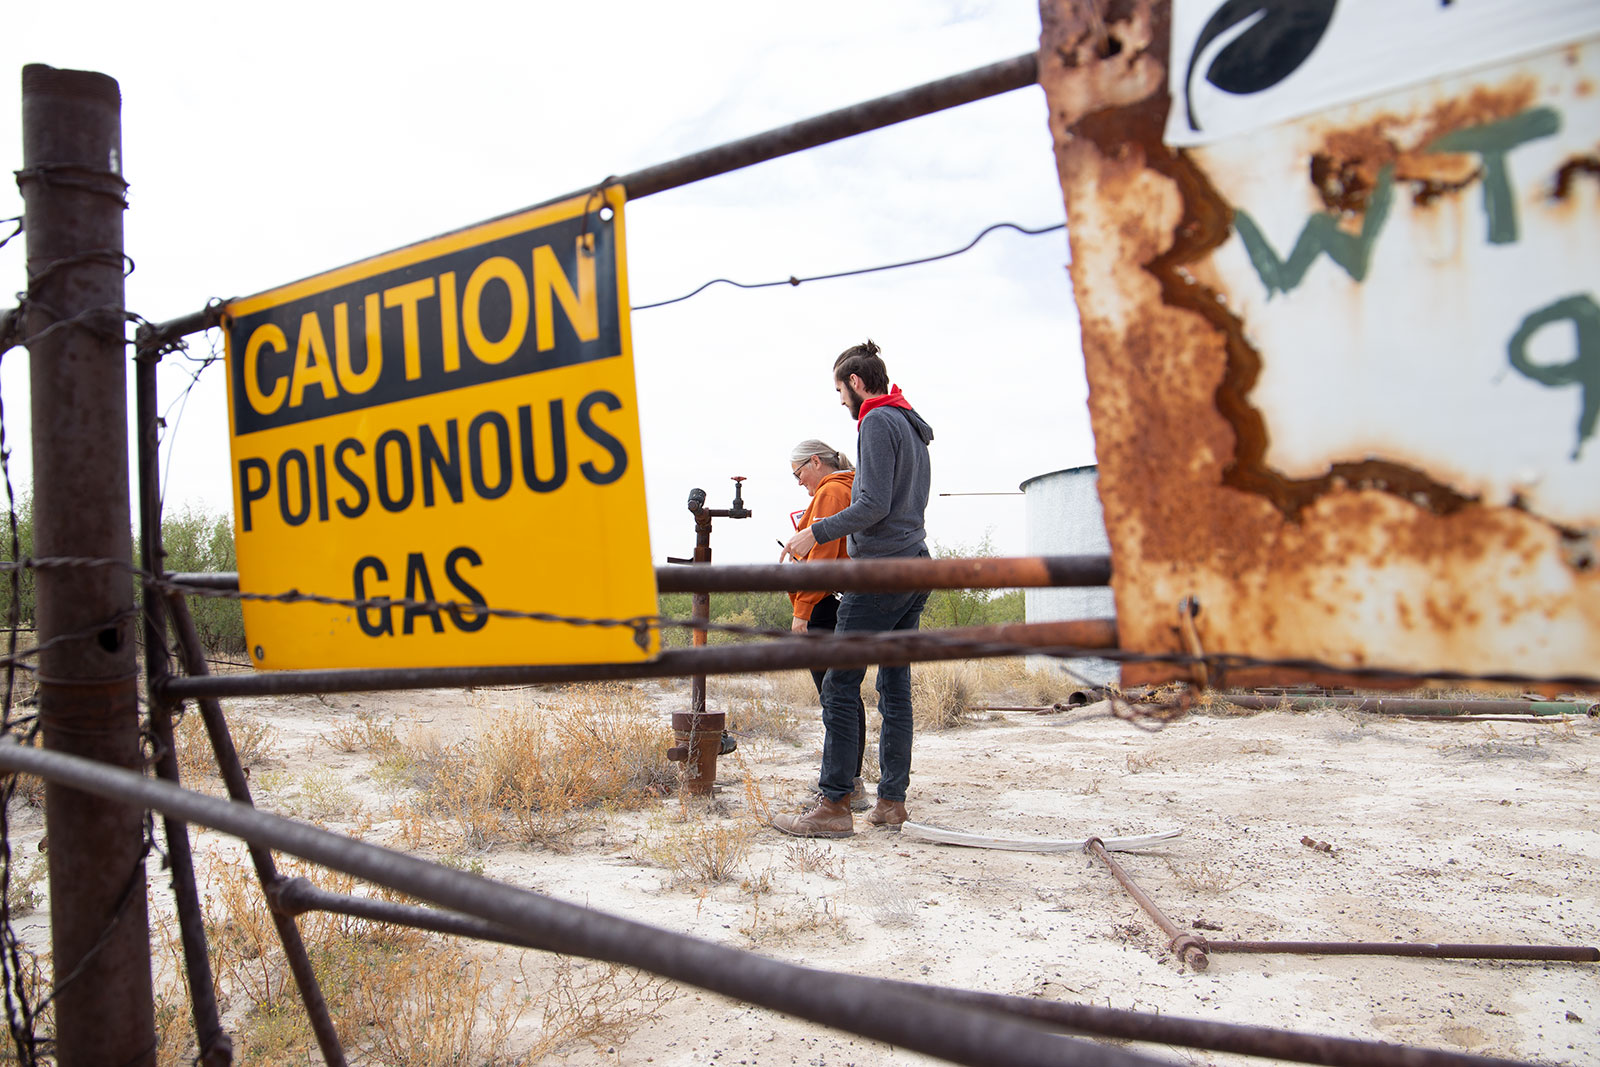 """Two people stand behind a fence with a sign that says """"Caution Poisonous Gas""""."""